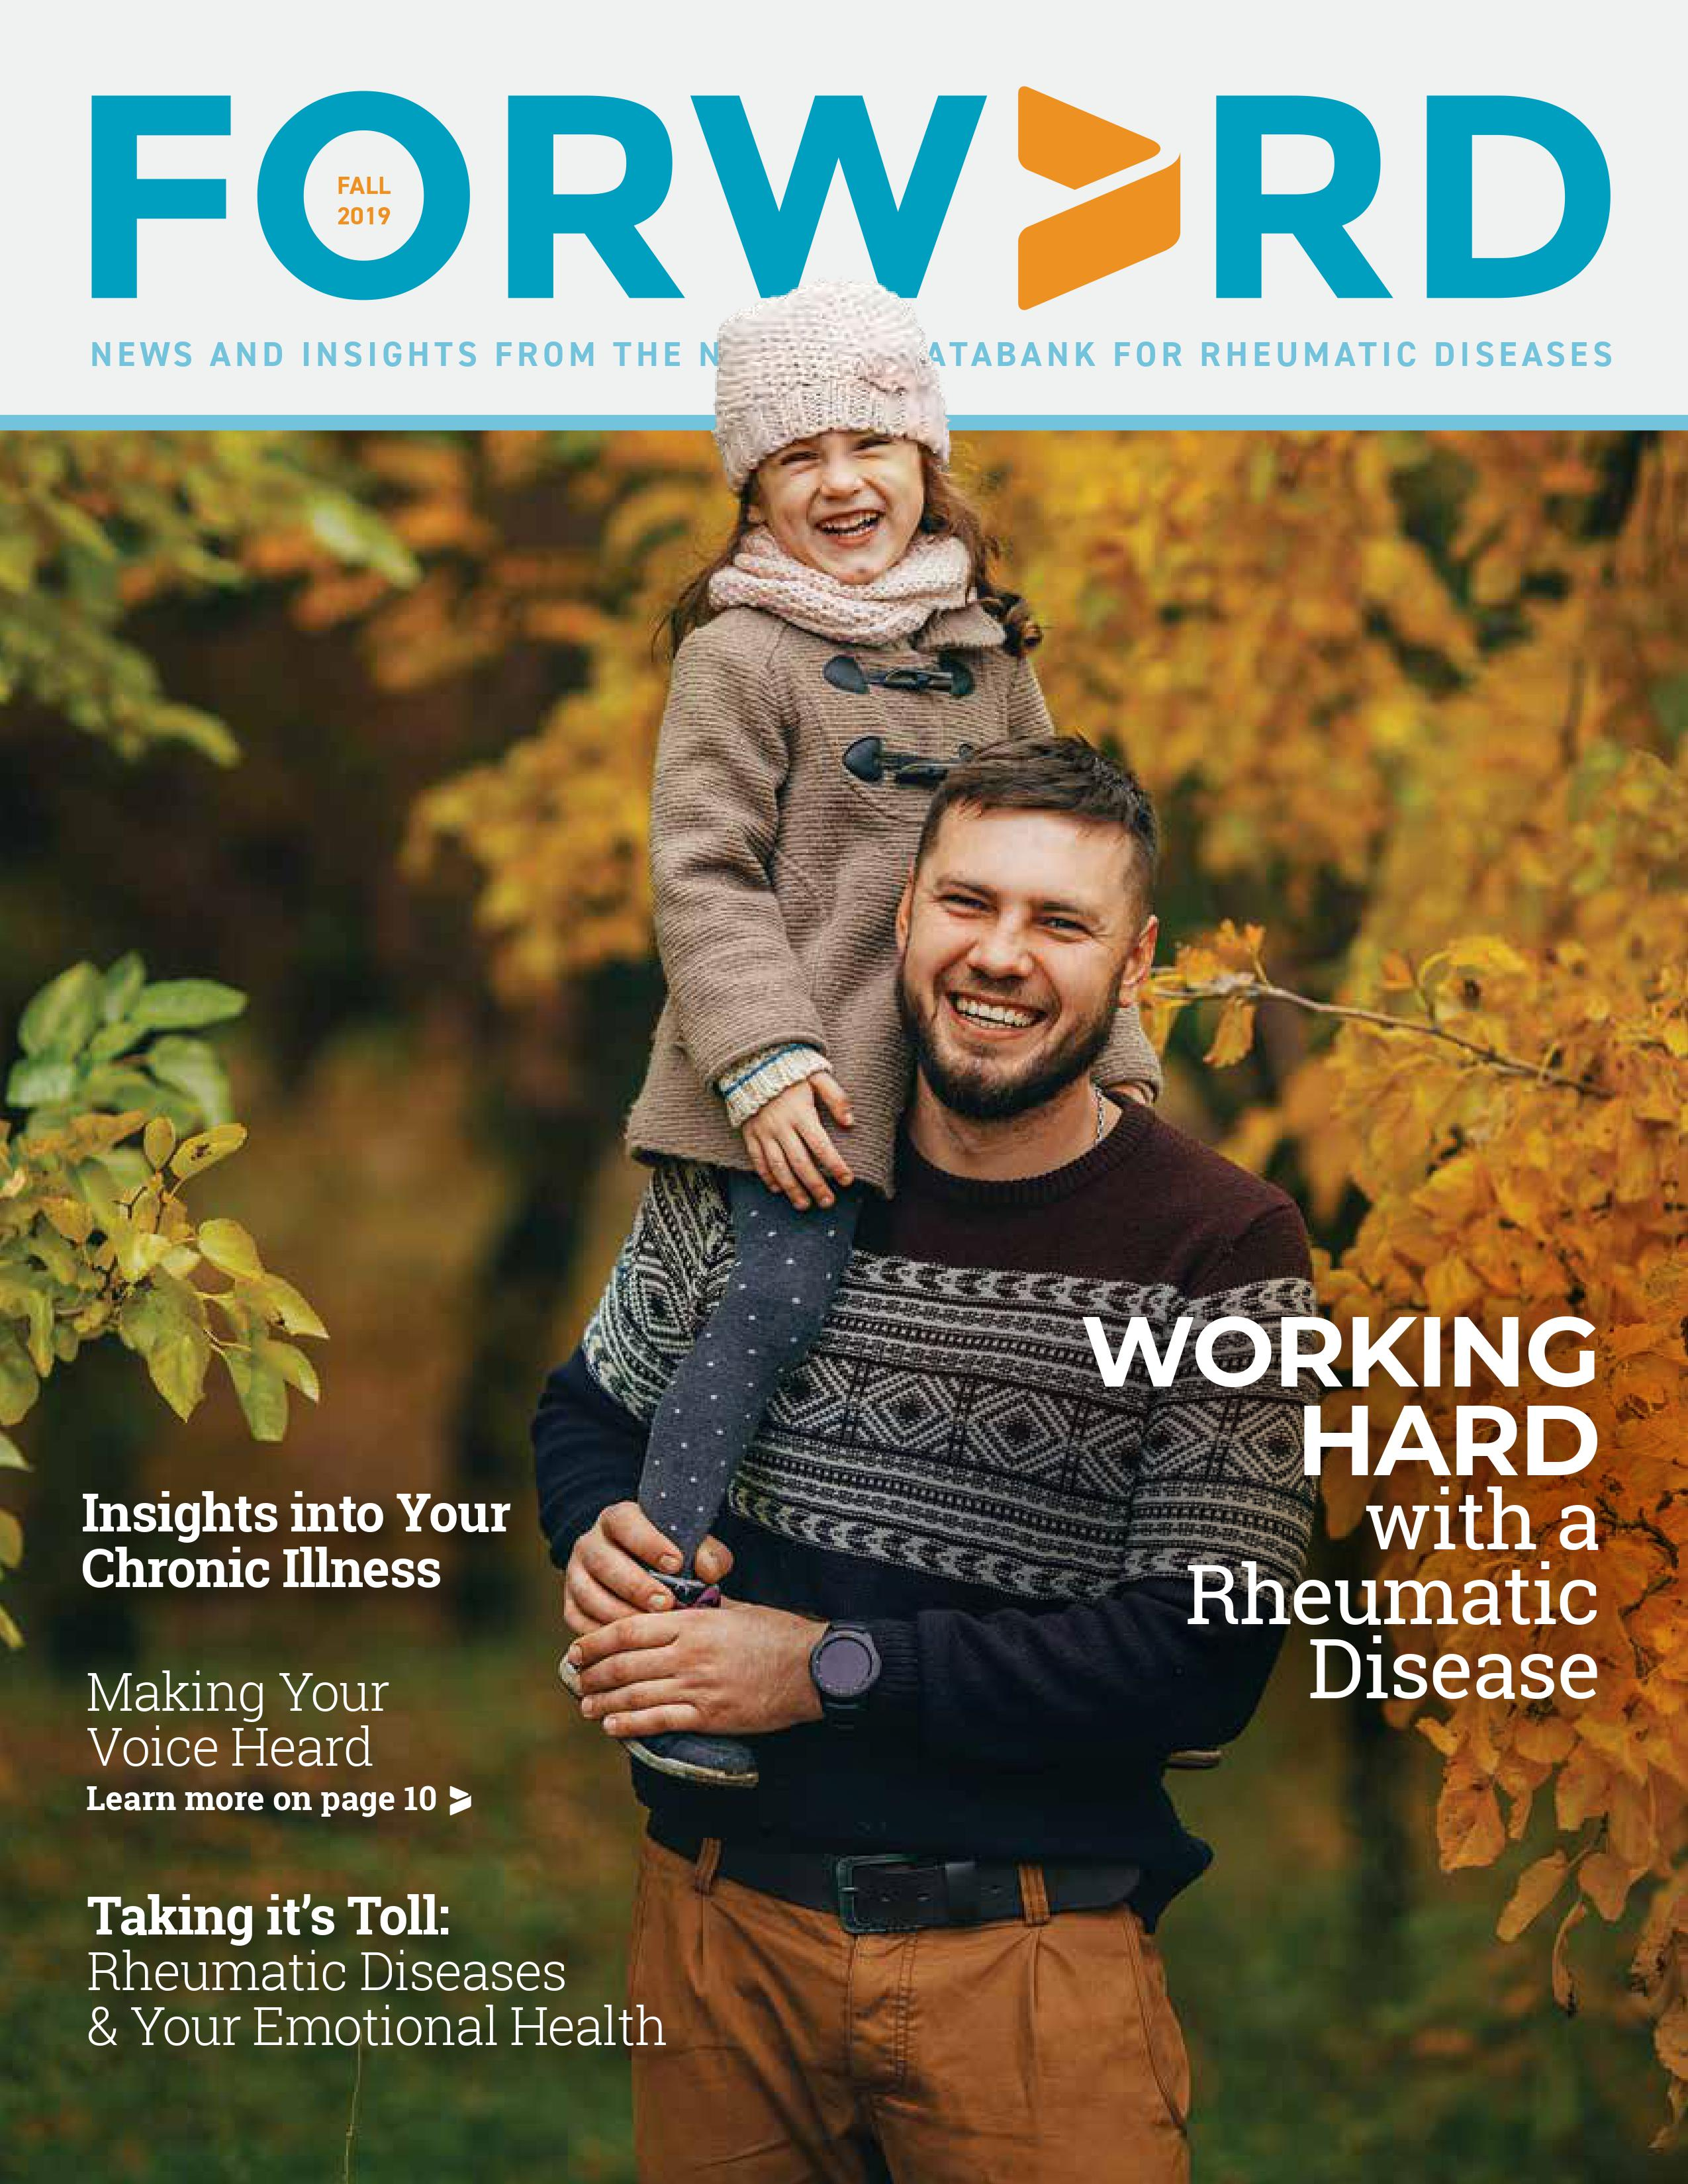 FORWARD Fall 2019 - Cover Page